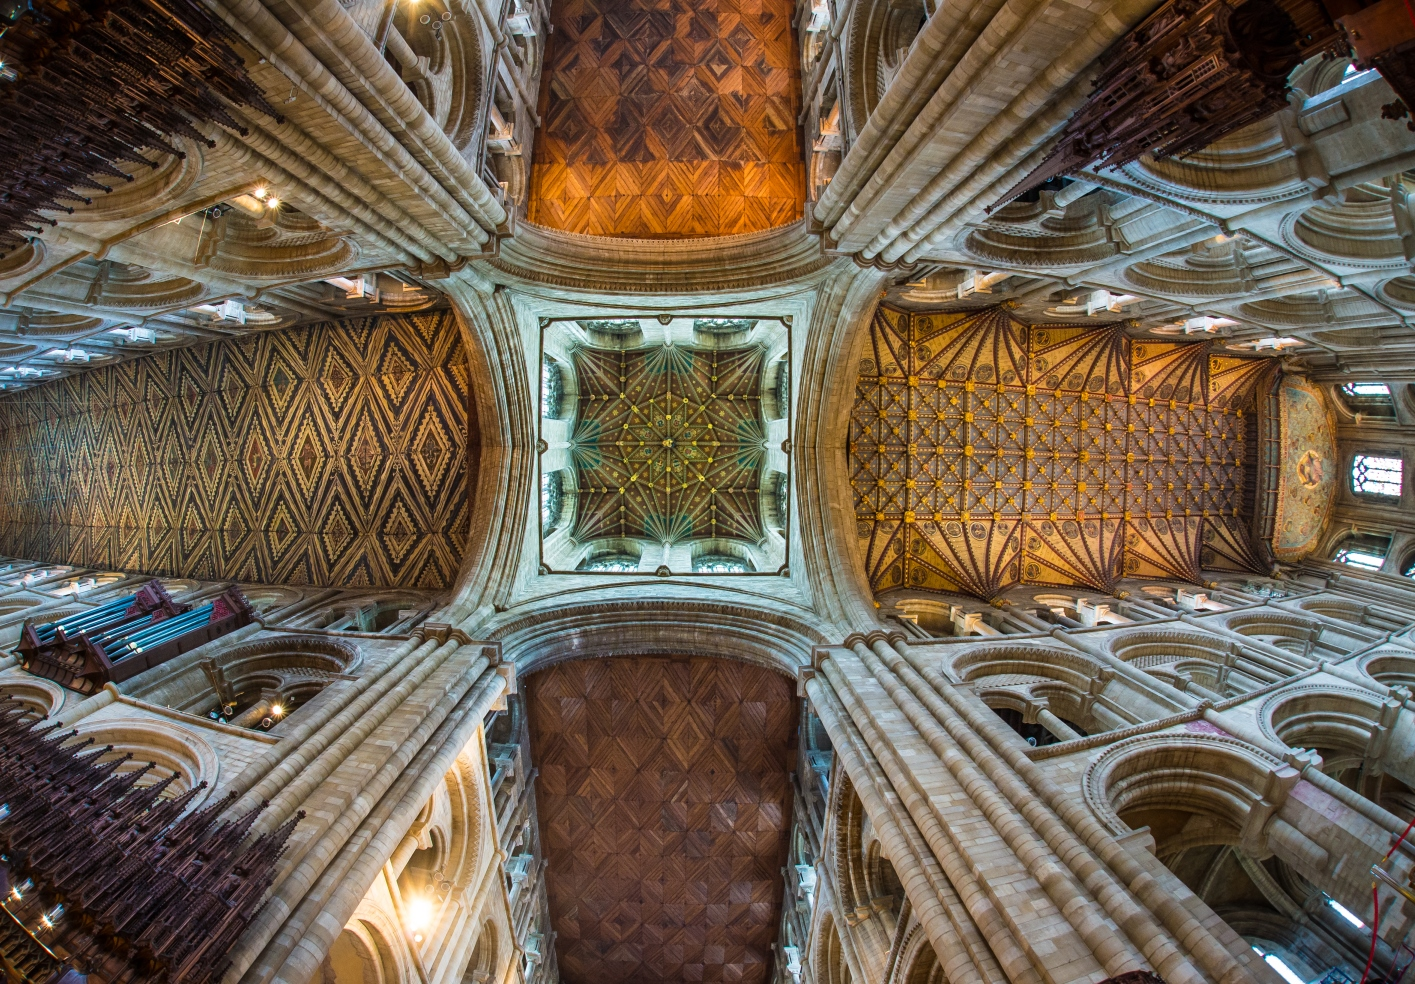 The spectacular ceilings inside Peterborough Cathedral